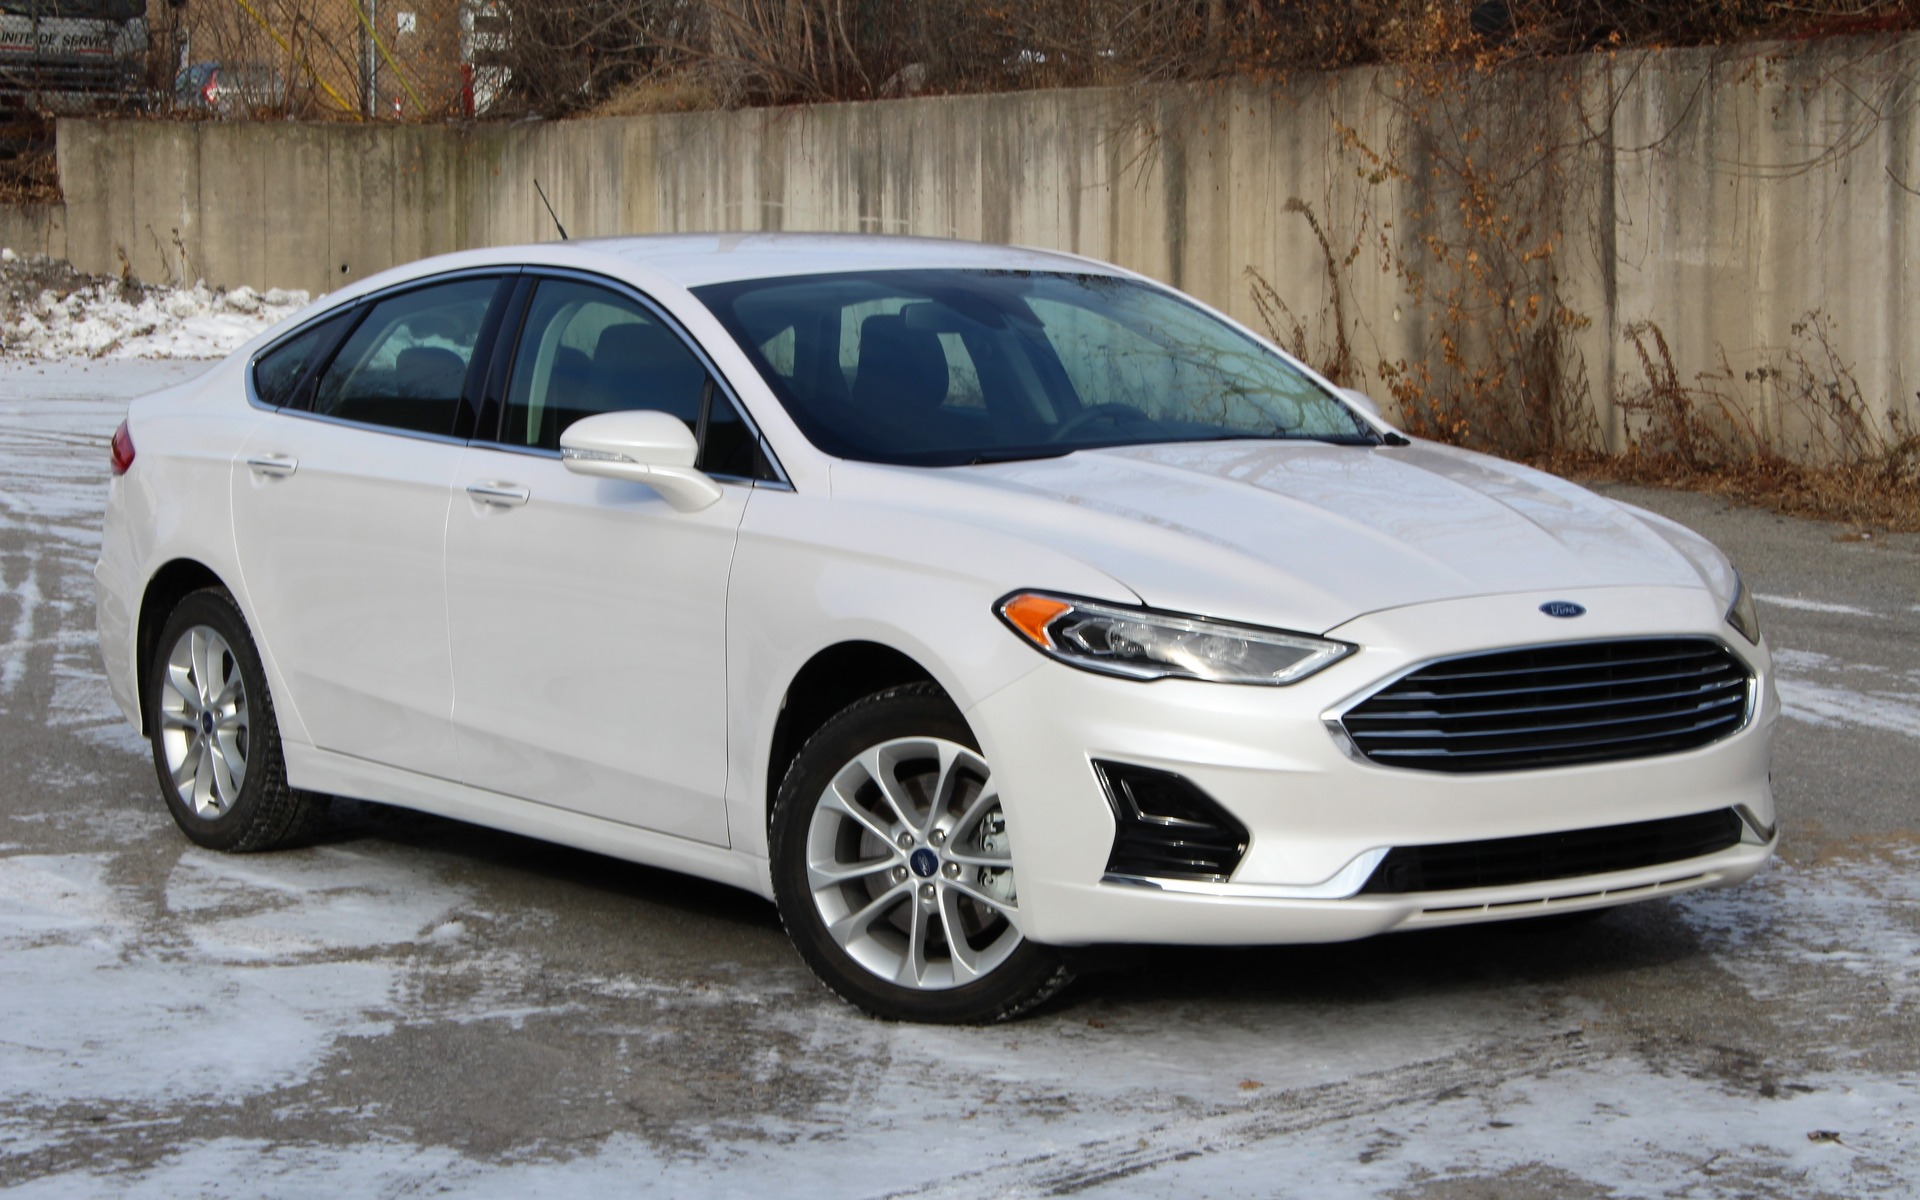 2019 ford fusion energi soon to be unplugged the car guide 2019 ford fusion energi soon to be